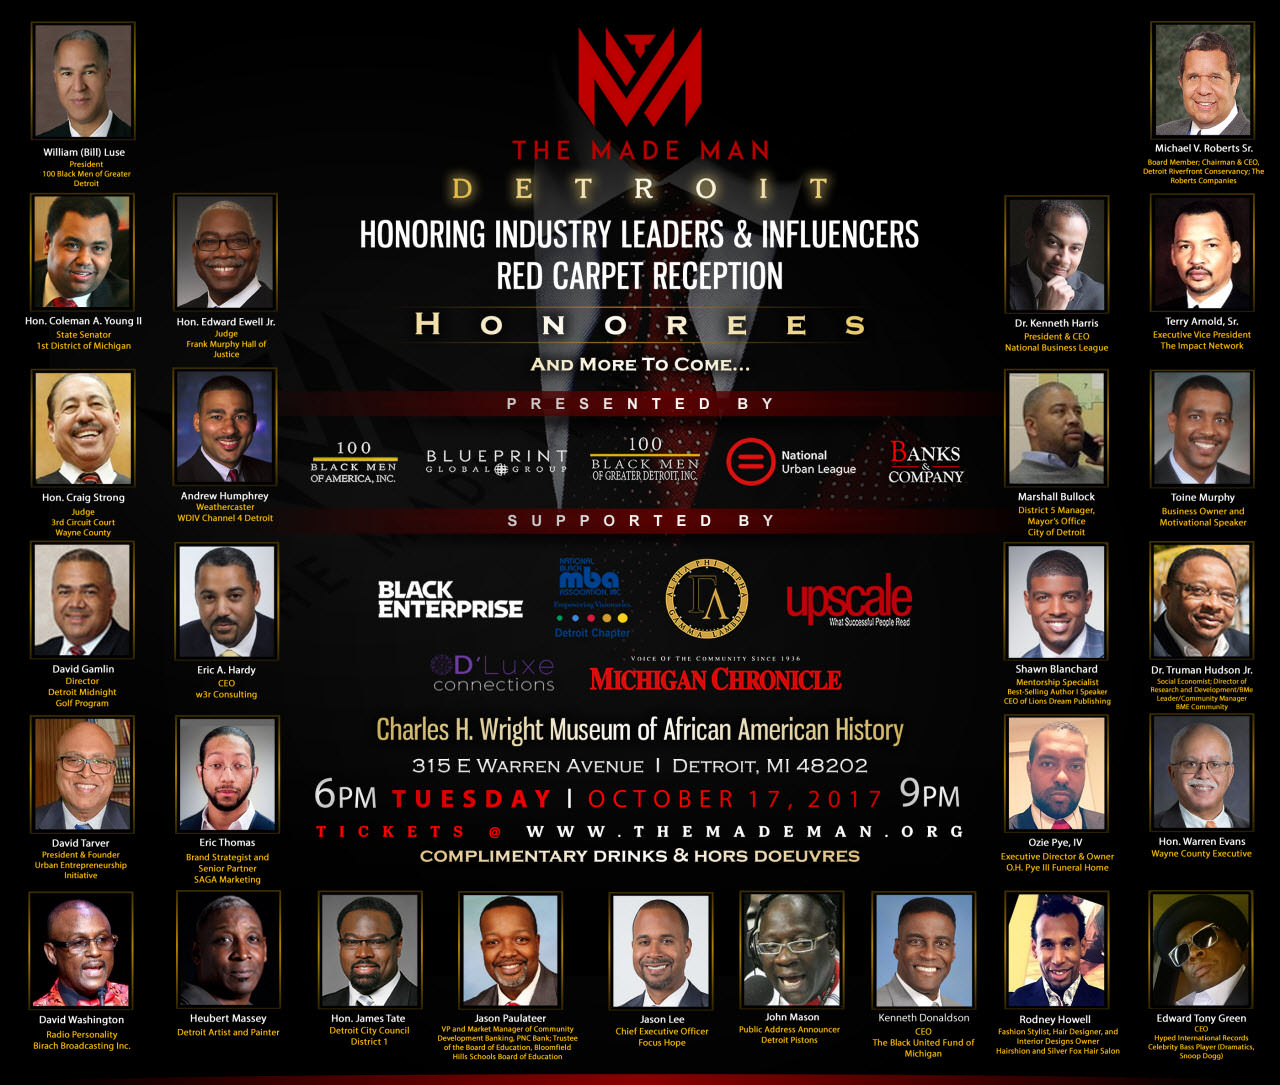 The Made Man - Detroit Honorees